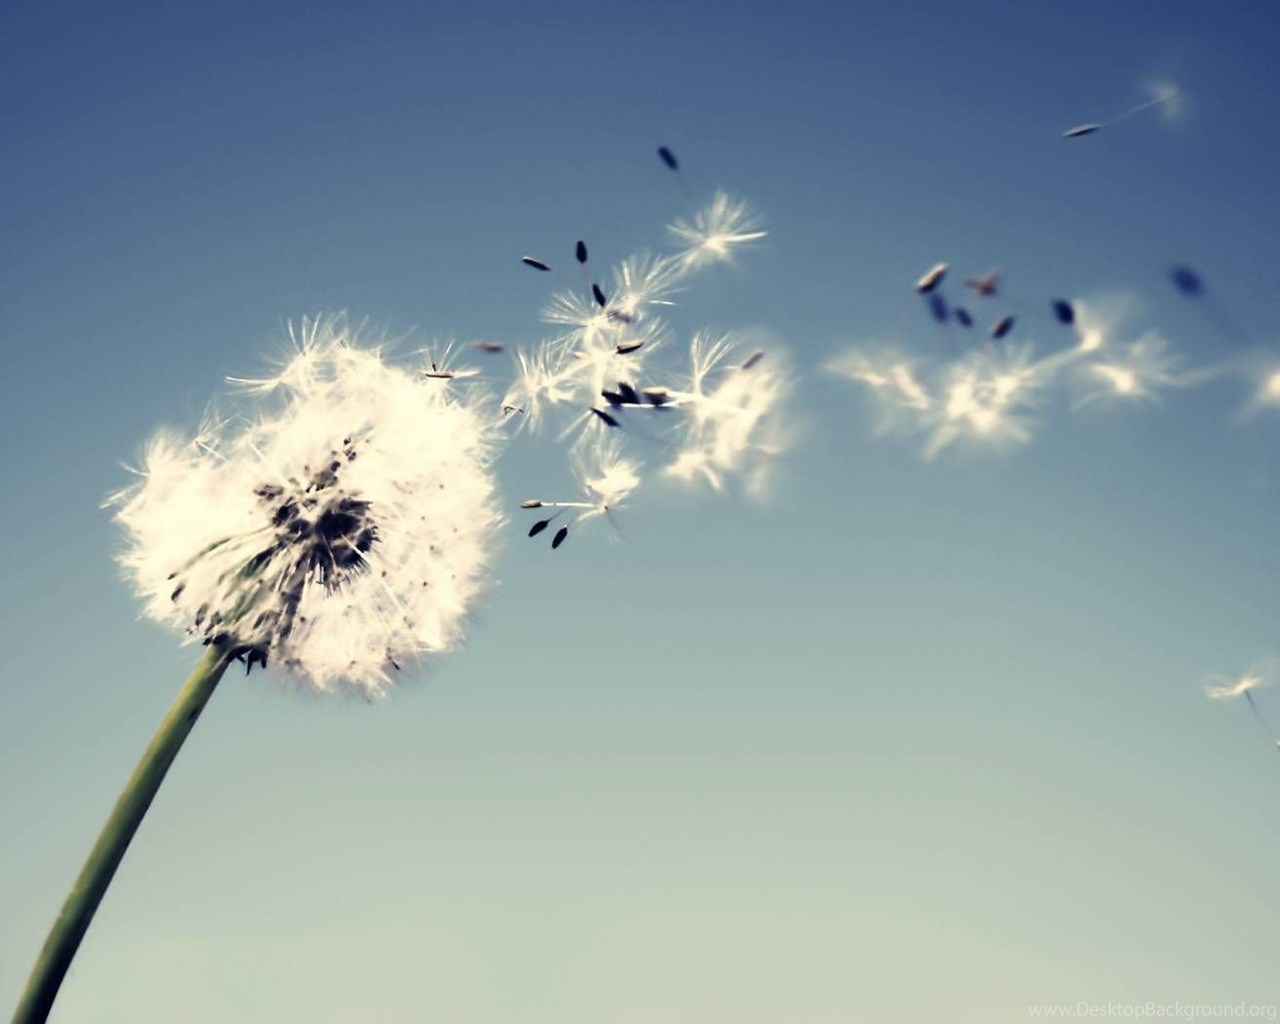 Dandelion wallpapers hd wallpapers page 0 desktop background - Dandelion hd wallpapers 1080p ...